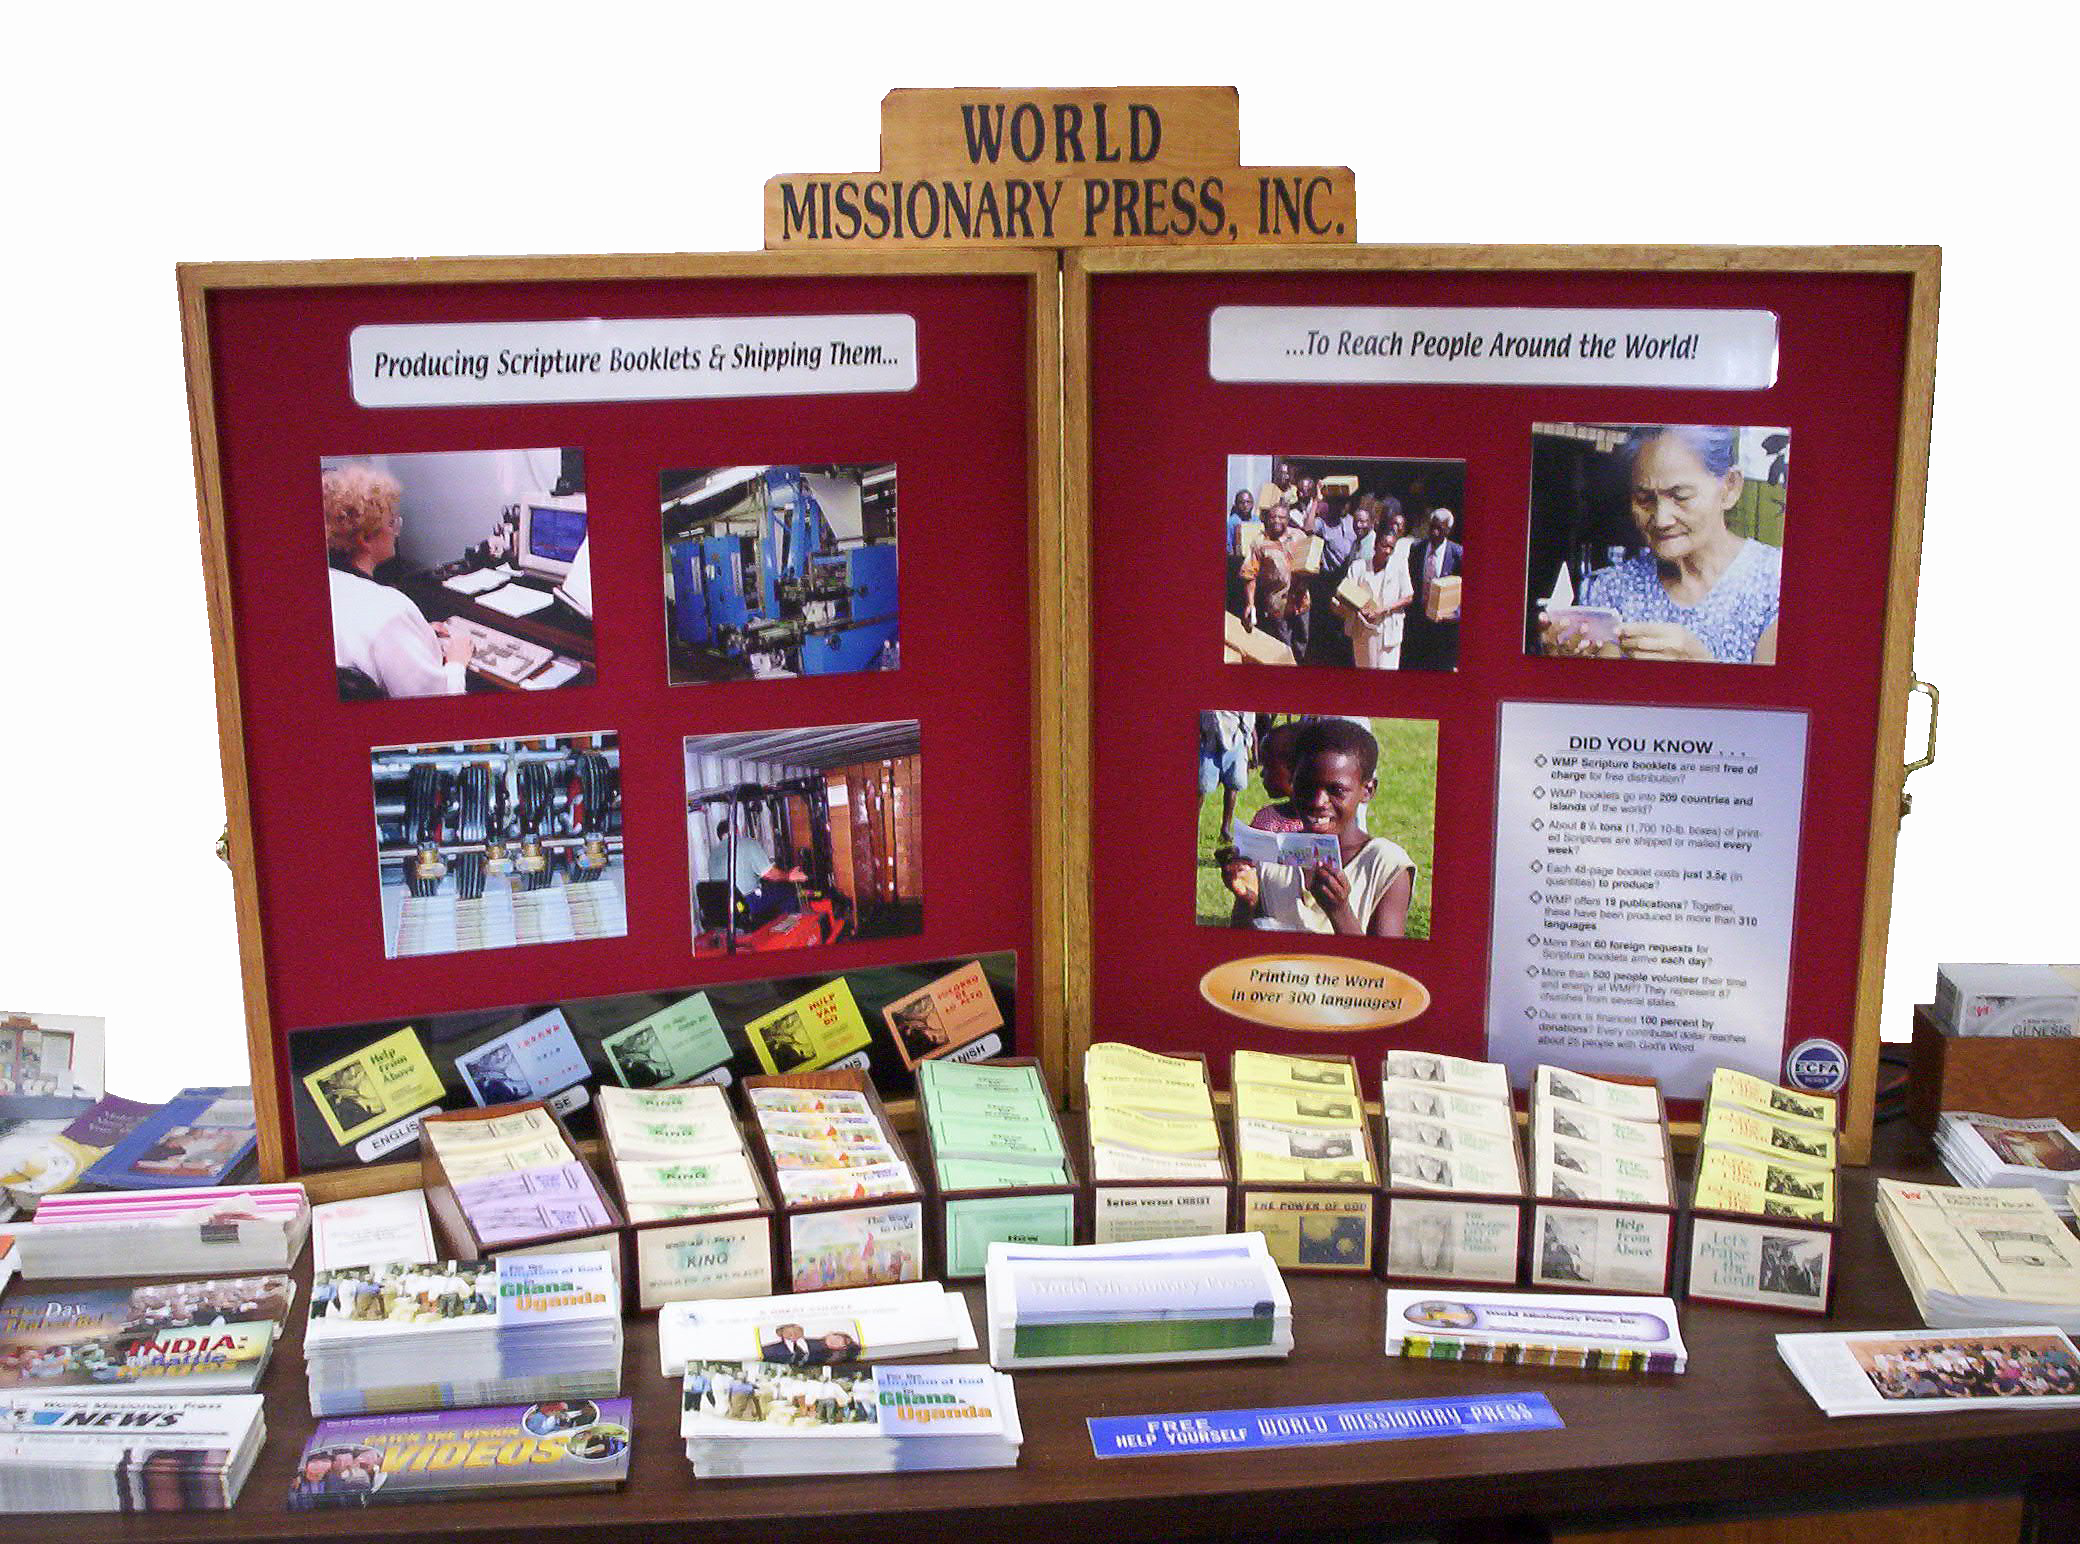 WMP Display 4-28-05 010-b